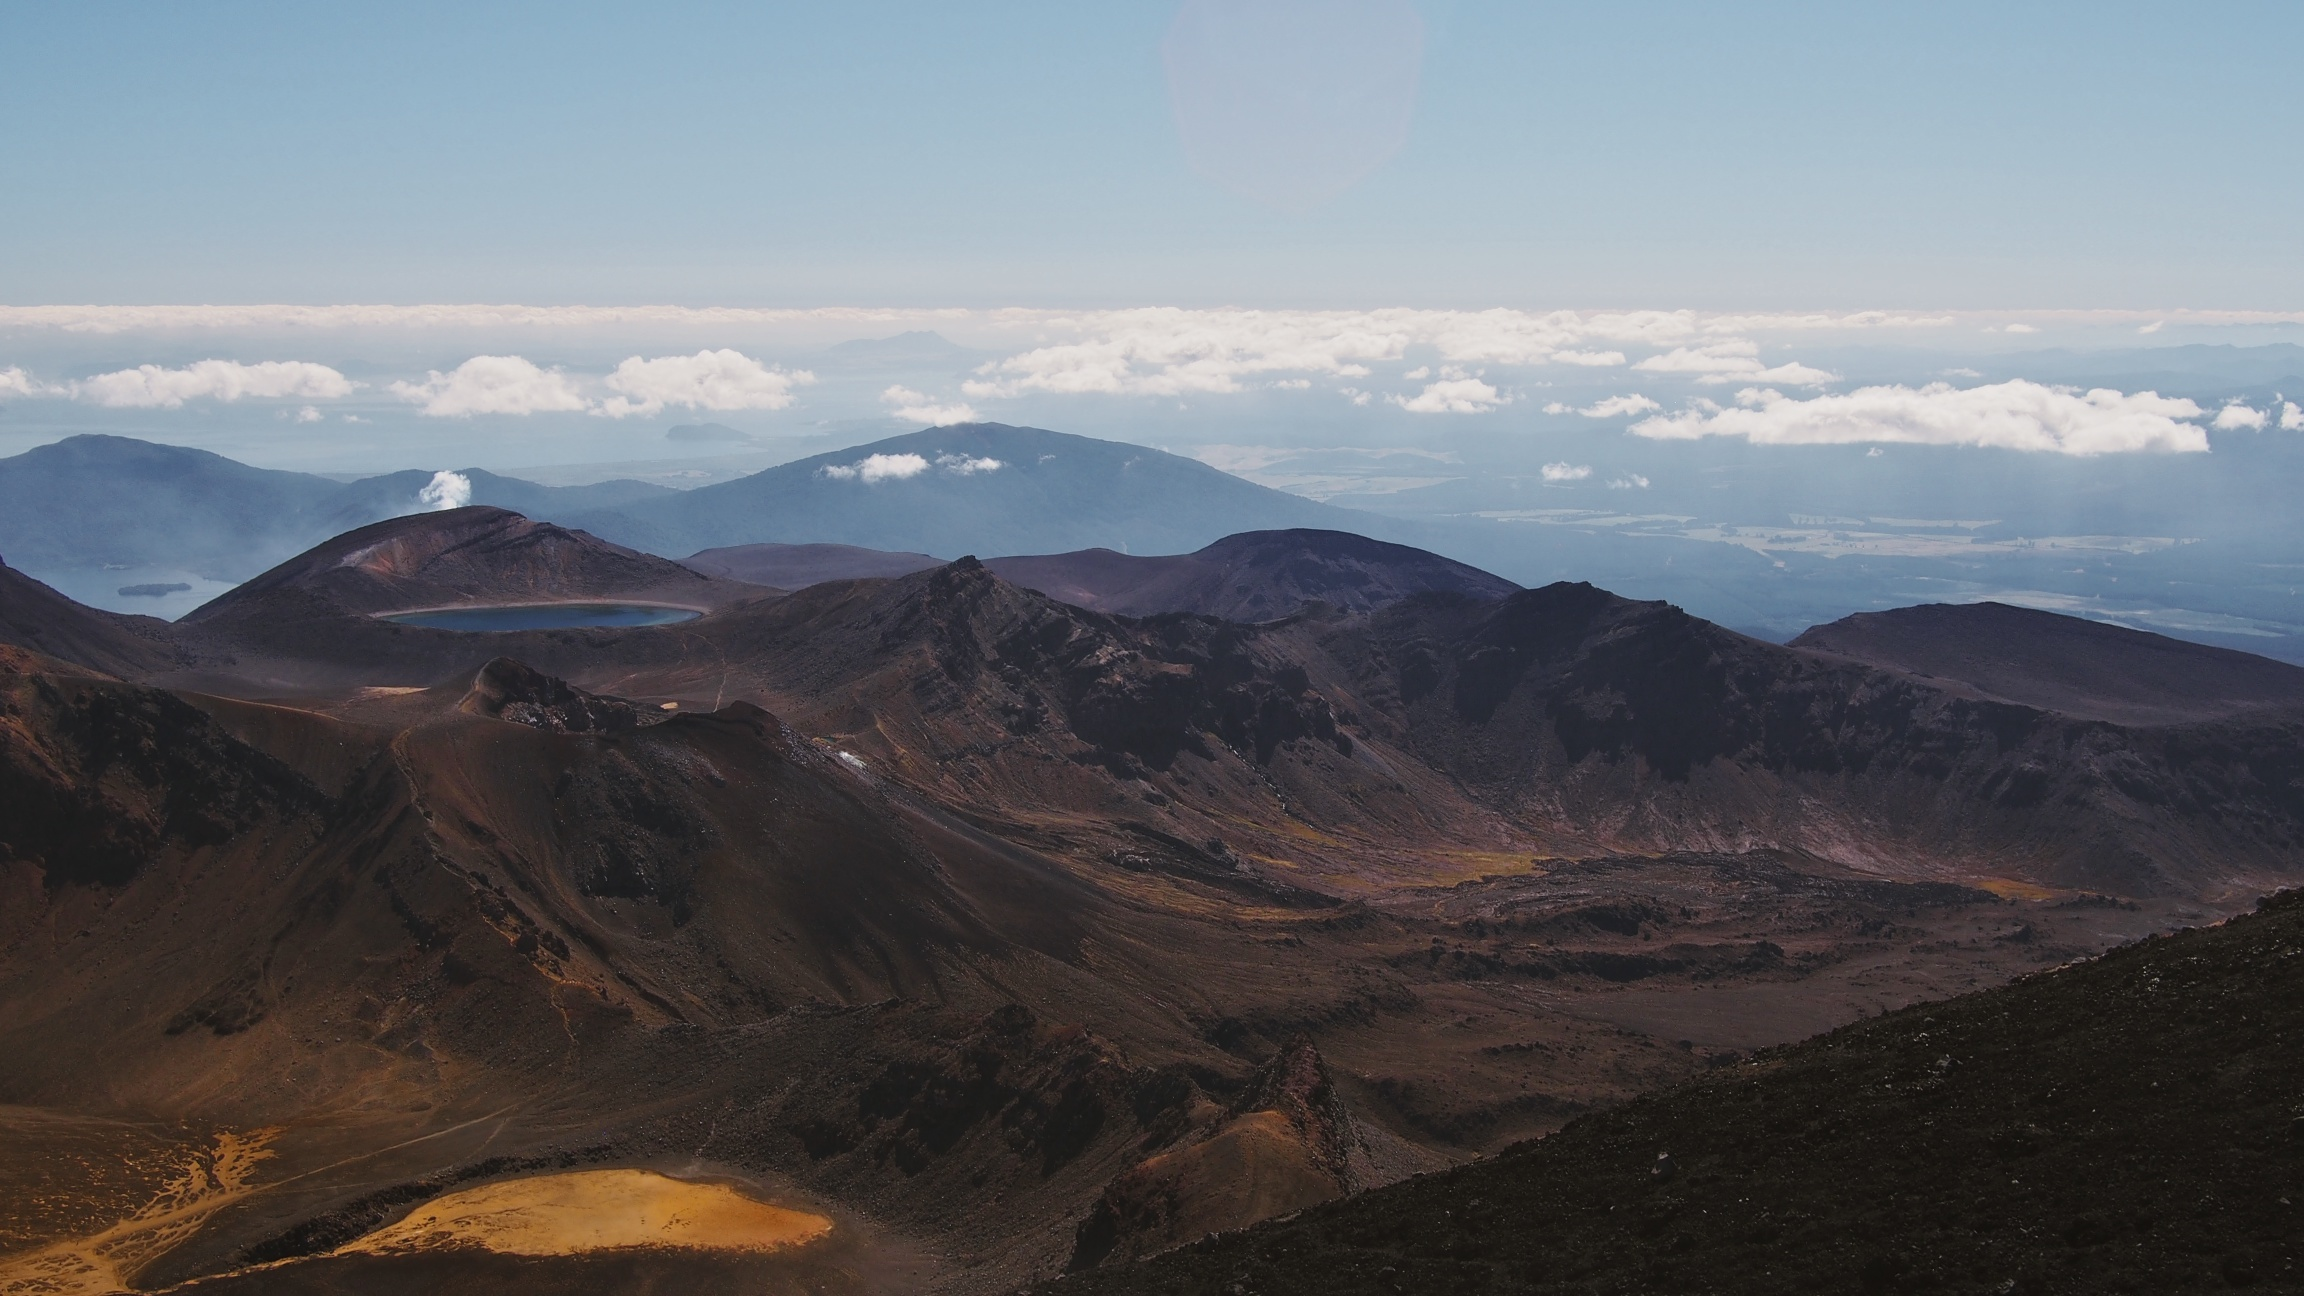 From the top of Mount Ngauruhoe, we caught a glimpse of the rest of the trail, including that blue circular lake, which we passed a few hours later.